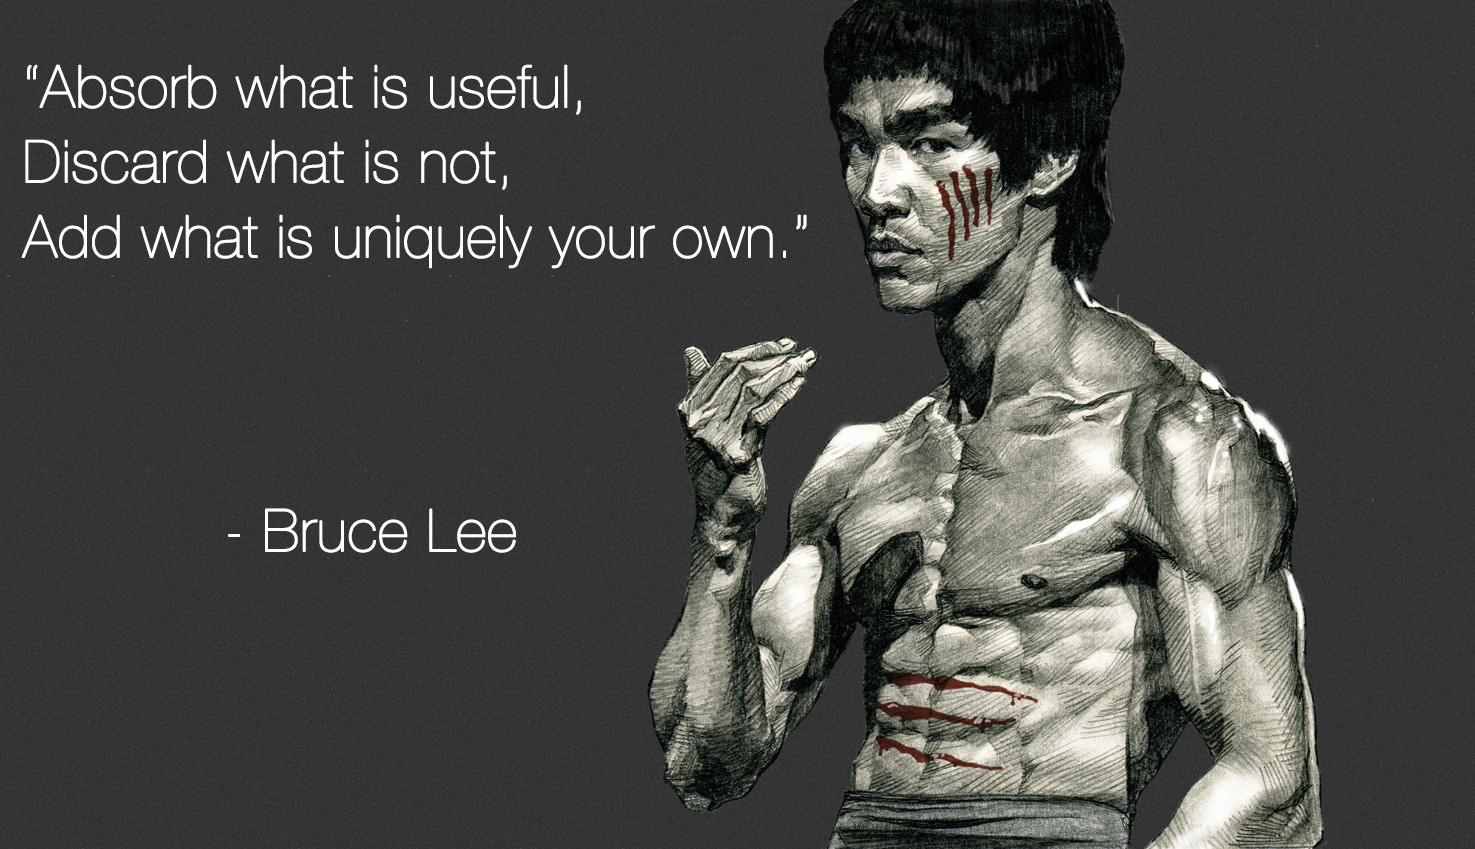 ... useful, discard what is not, add what is uniquely your own - Bruce Lee